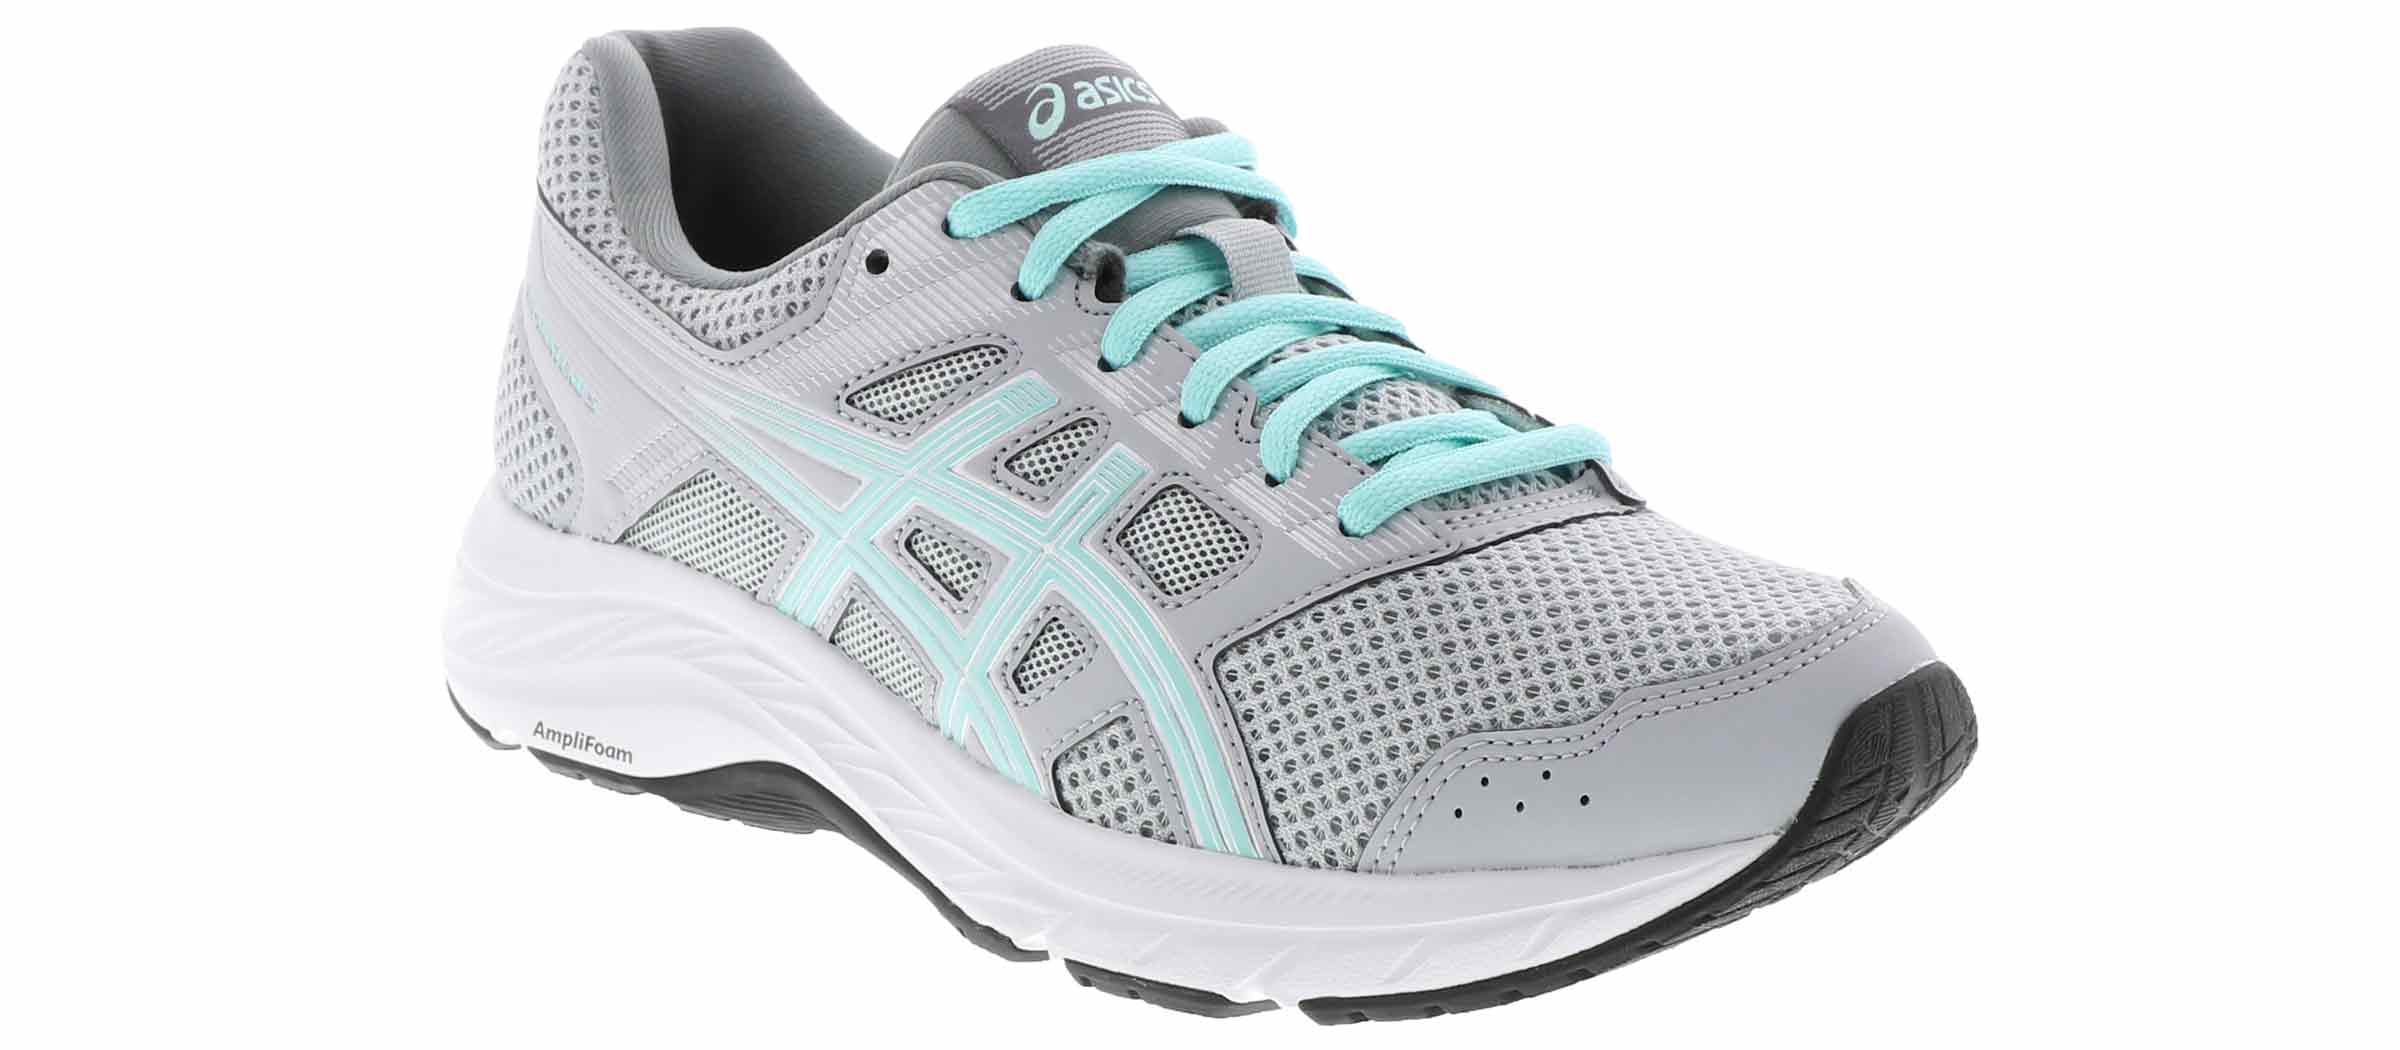 1f8d44df2d Women's Asics Gel Contend 5 Wide